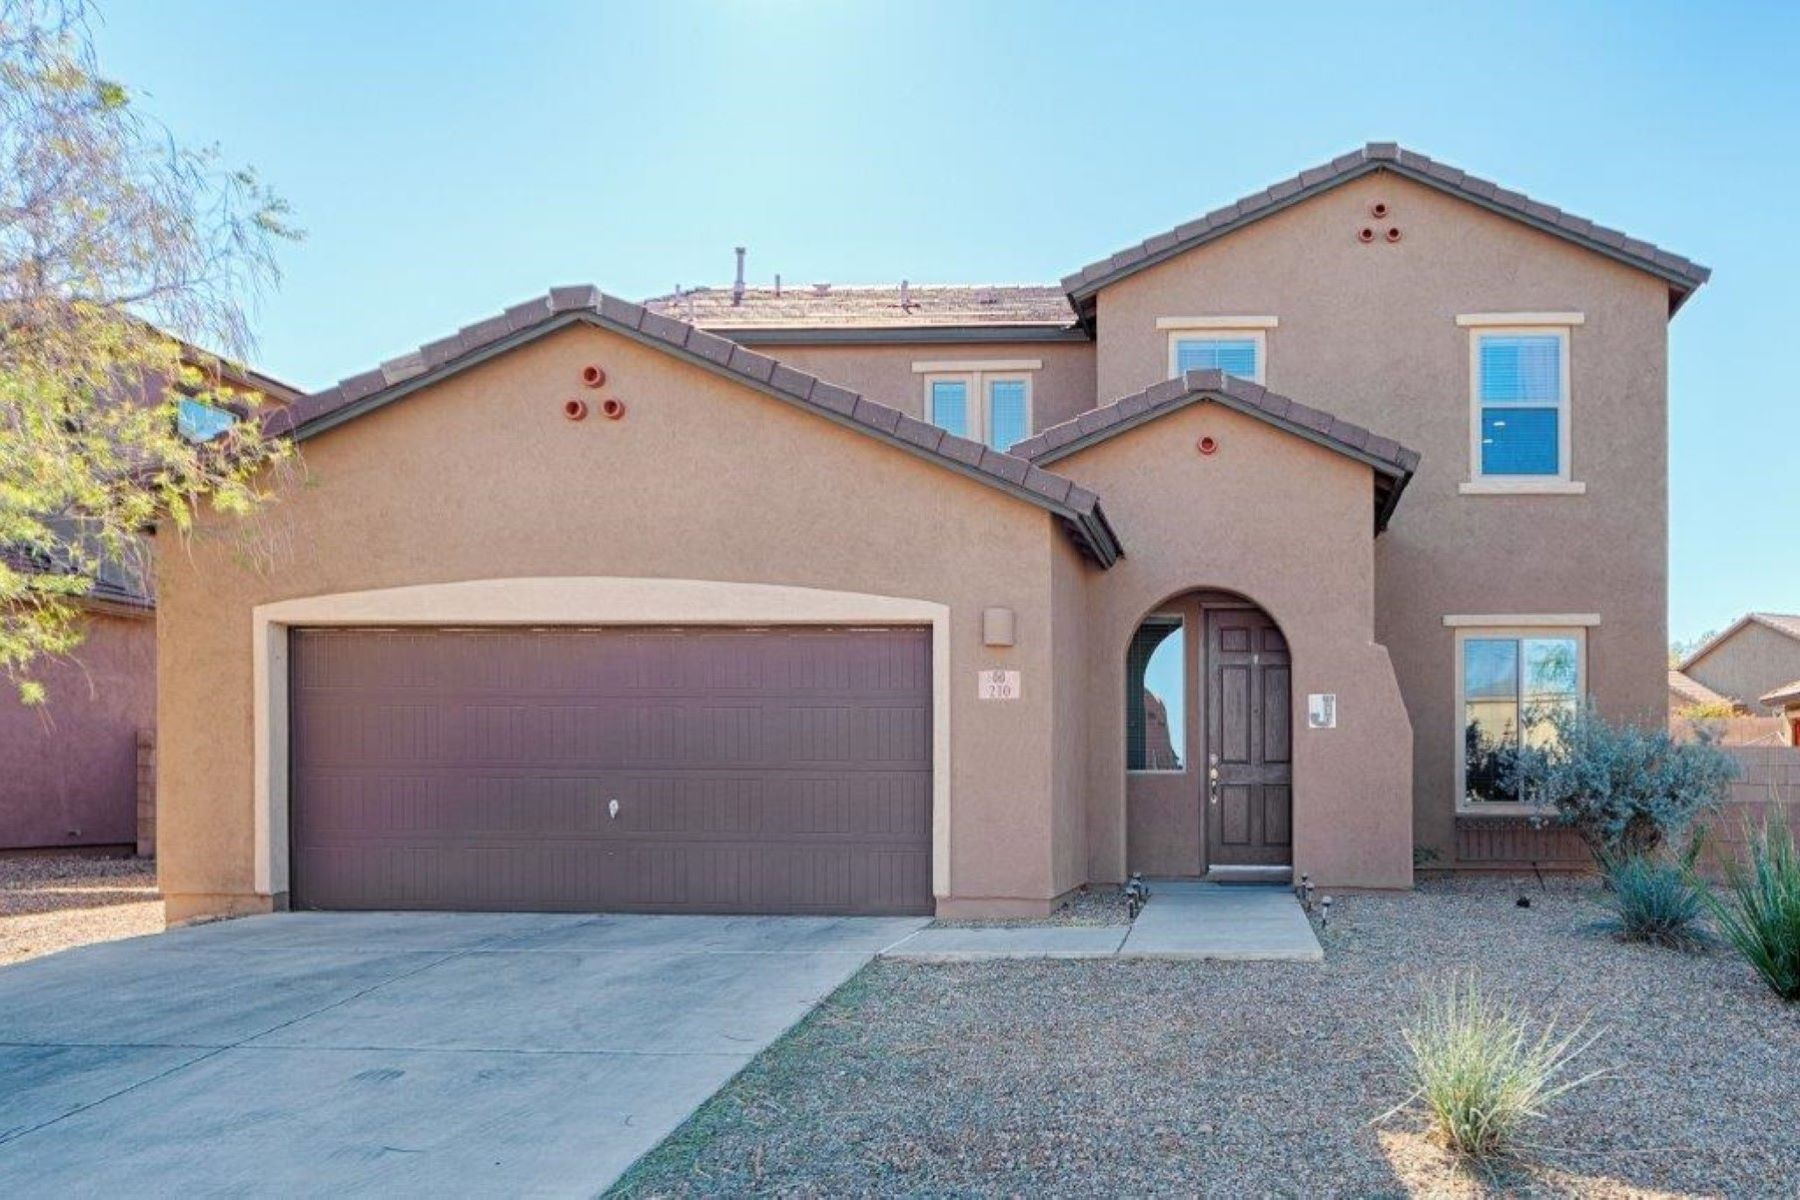 Single Family Homes for Active at Main Floor Guest Suite with Full Bath 210 E Sycamore View Road Vail, Arizona 85641 United States